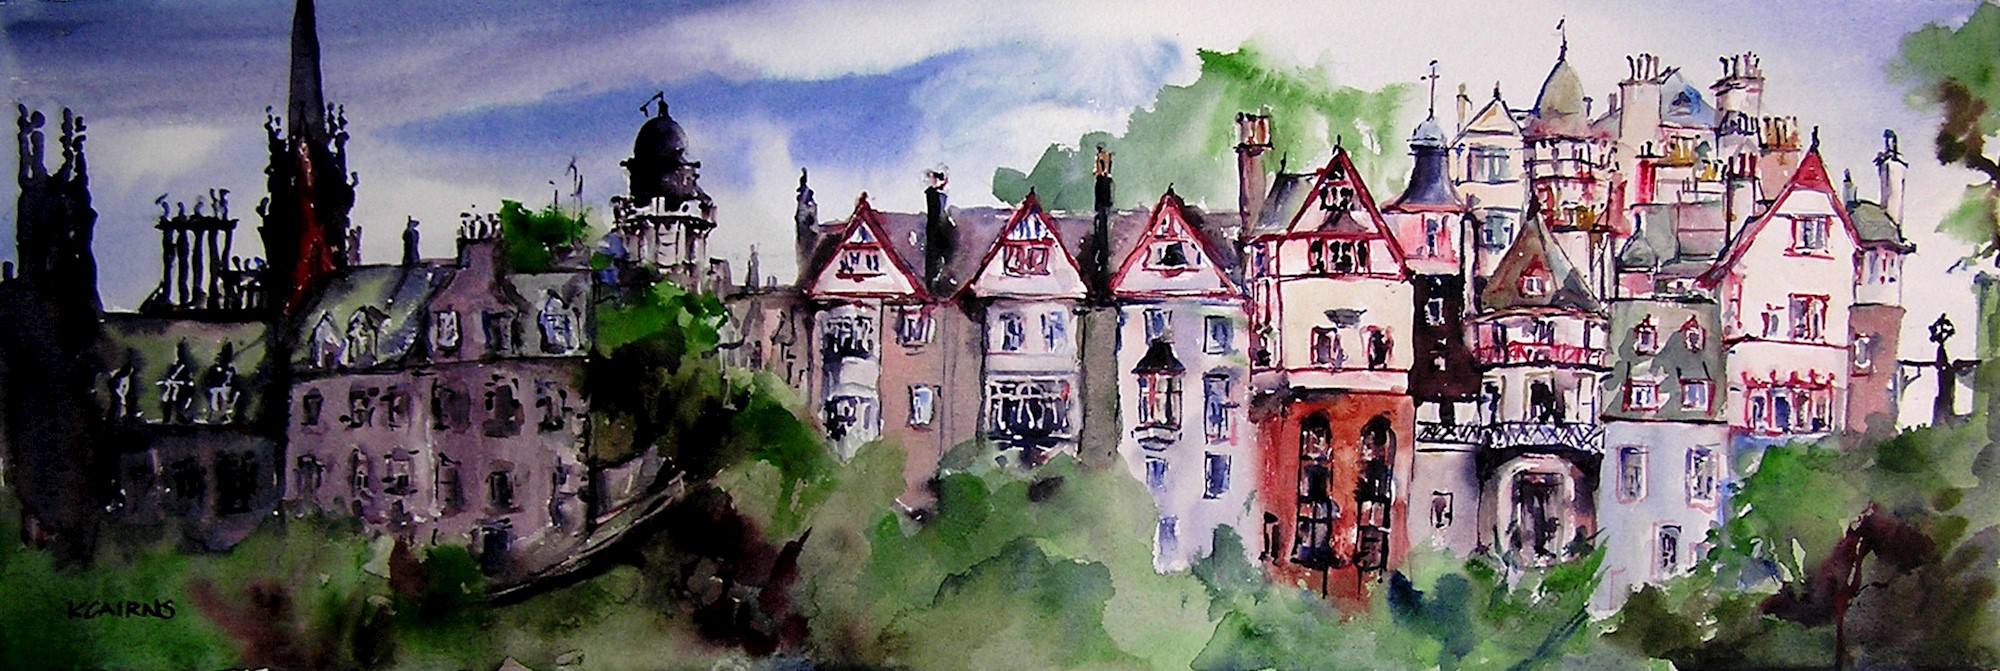 'Old Town Heights, Ramsay Gardens' by artist Karen Cairns